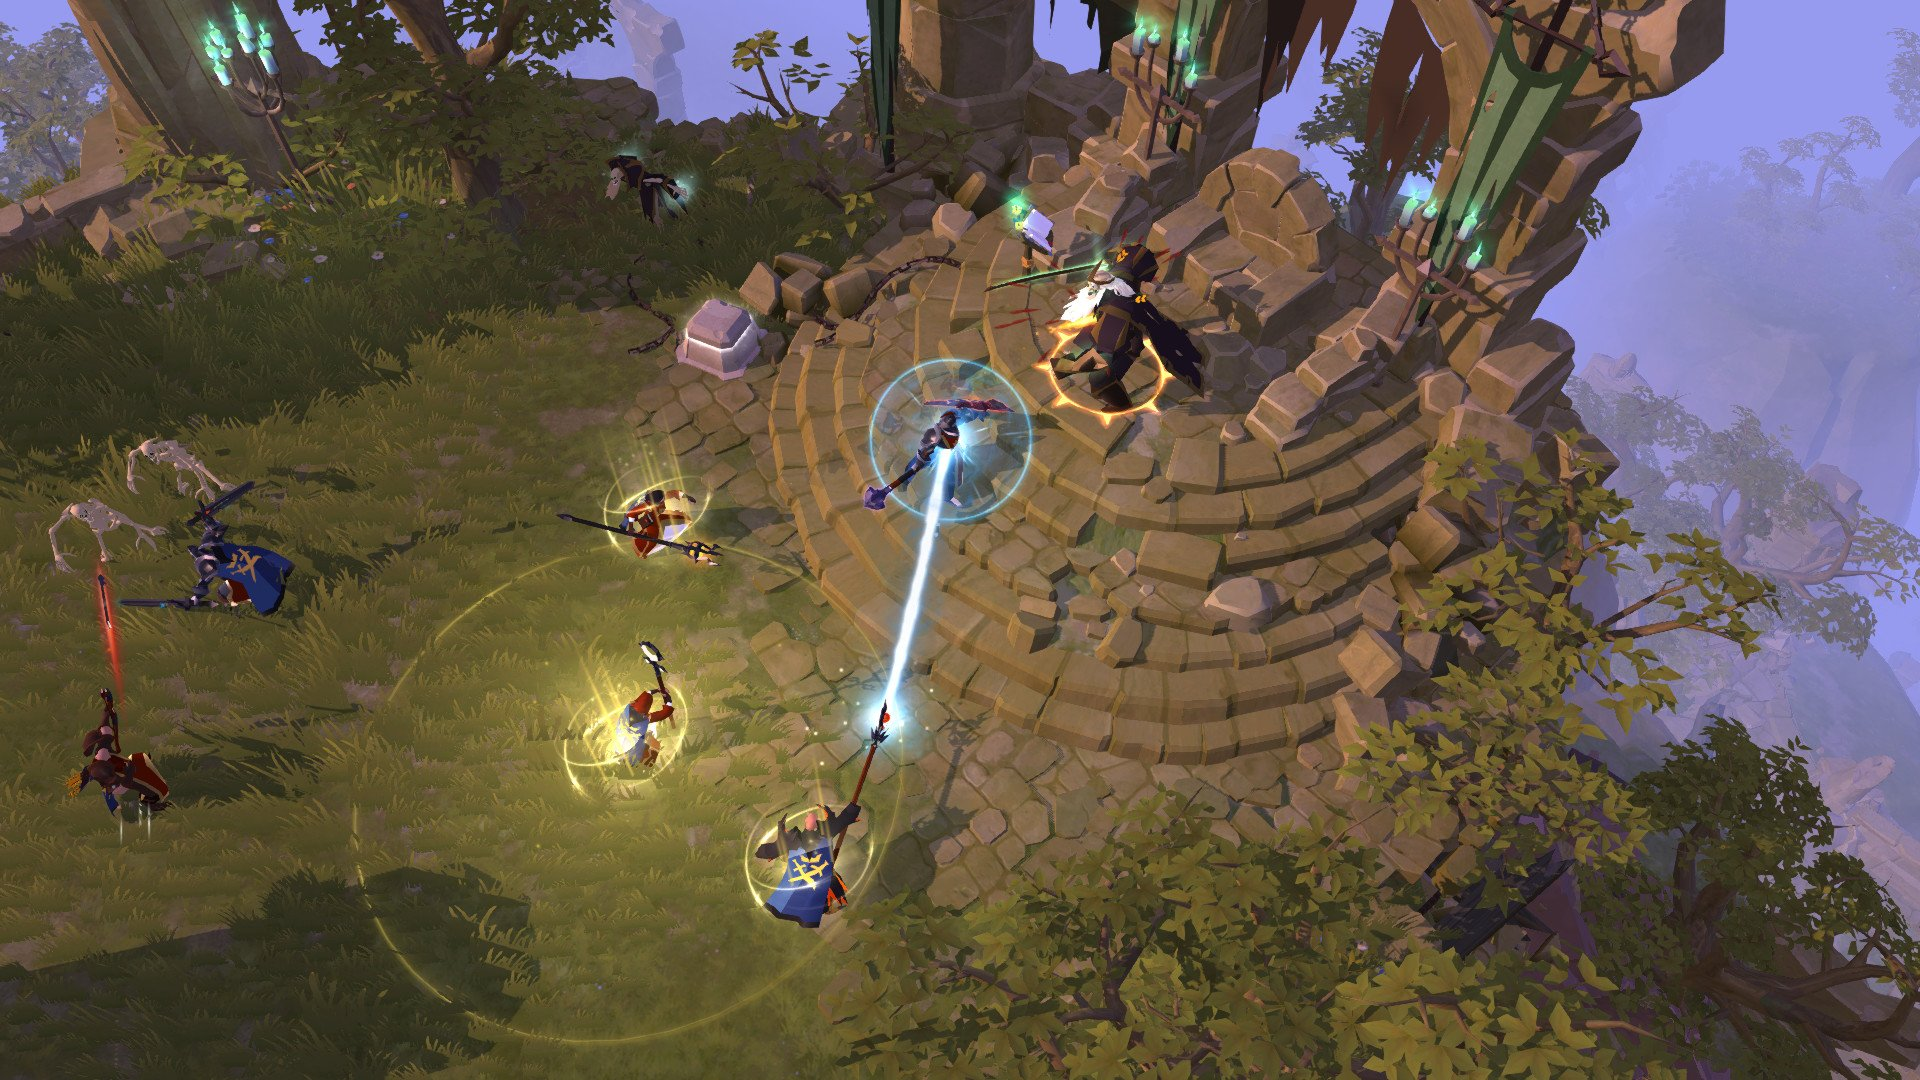 migliori free to play 2020 giochi free to play 2020 migliori giochi gratis 2020 MMO gratis MMORPG gratis albion online